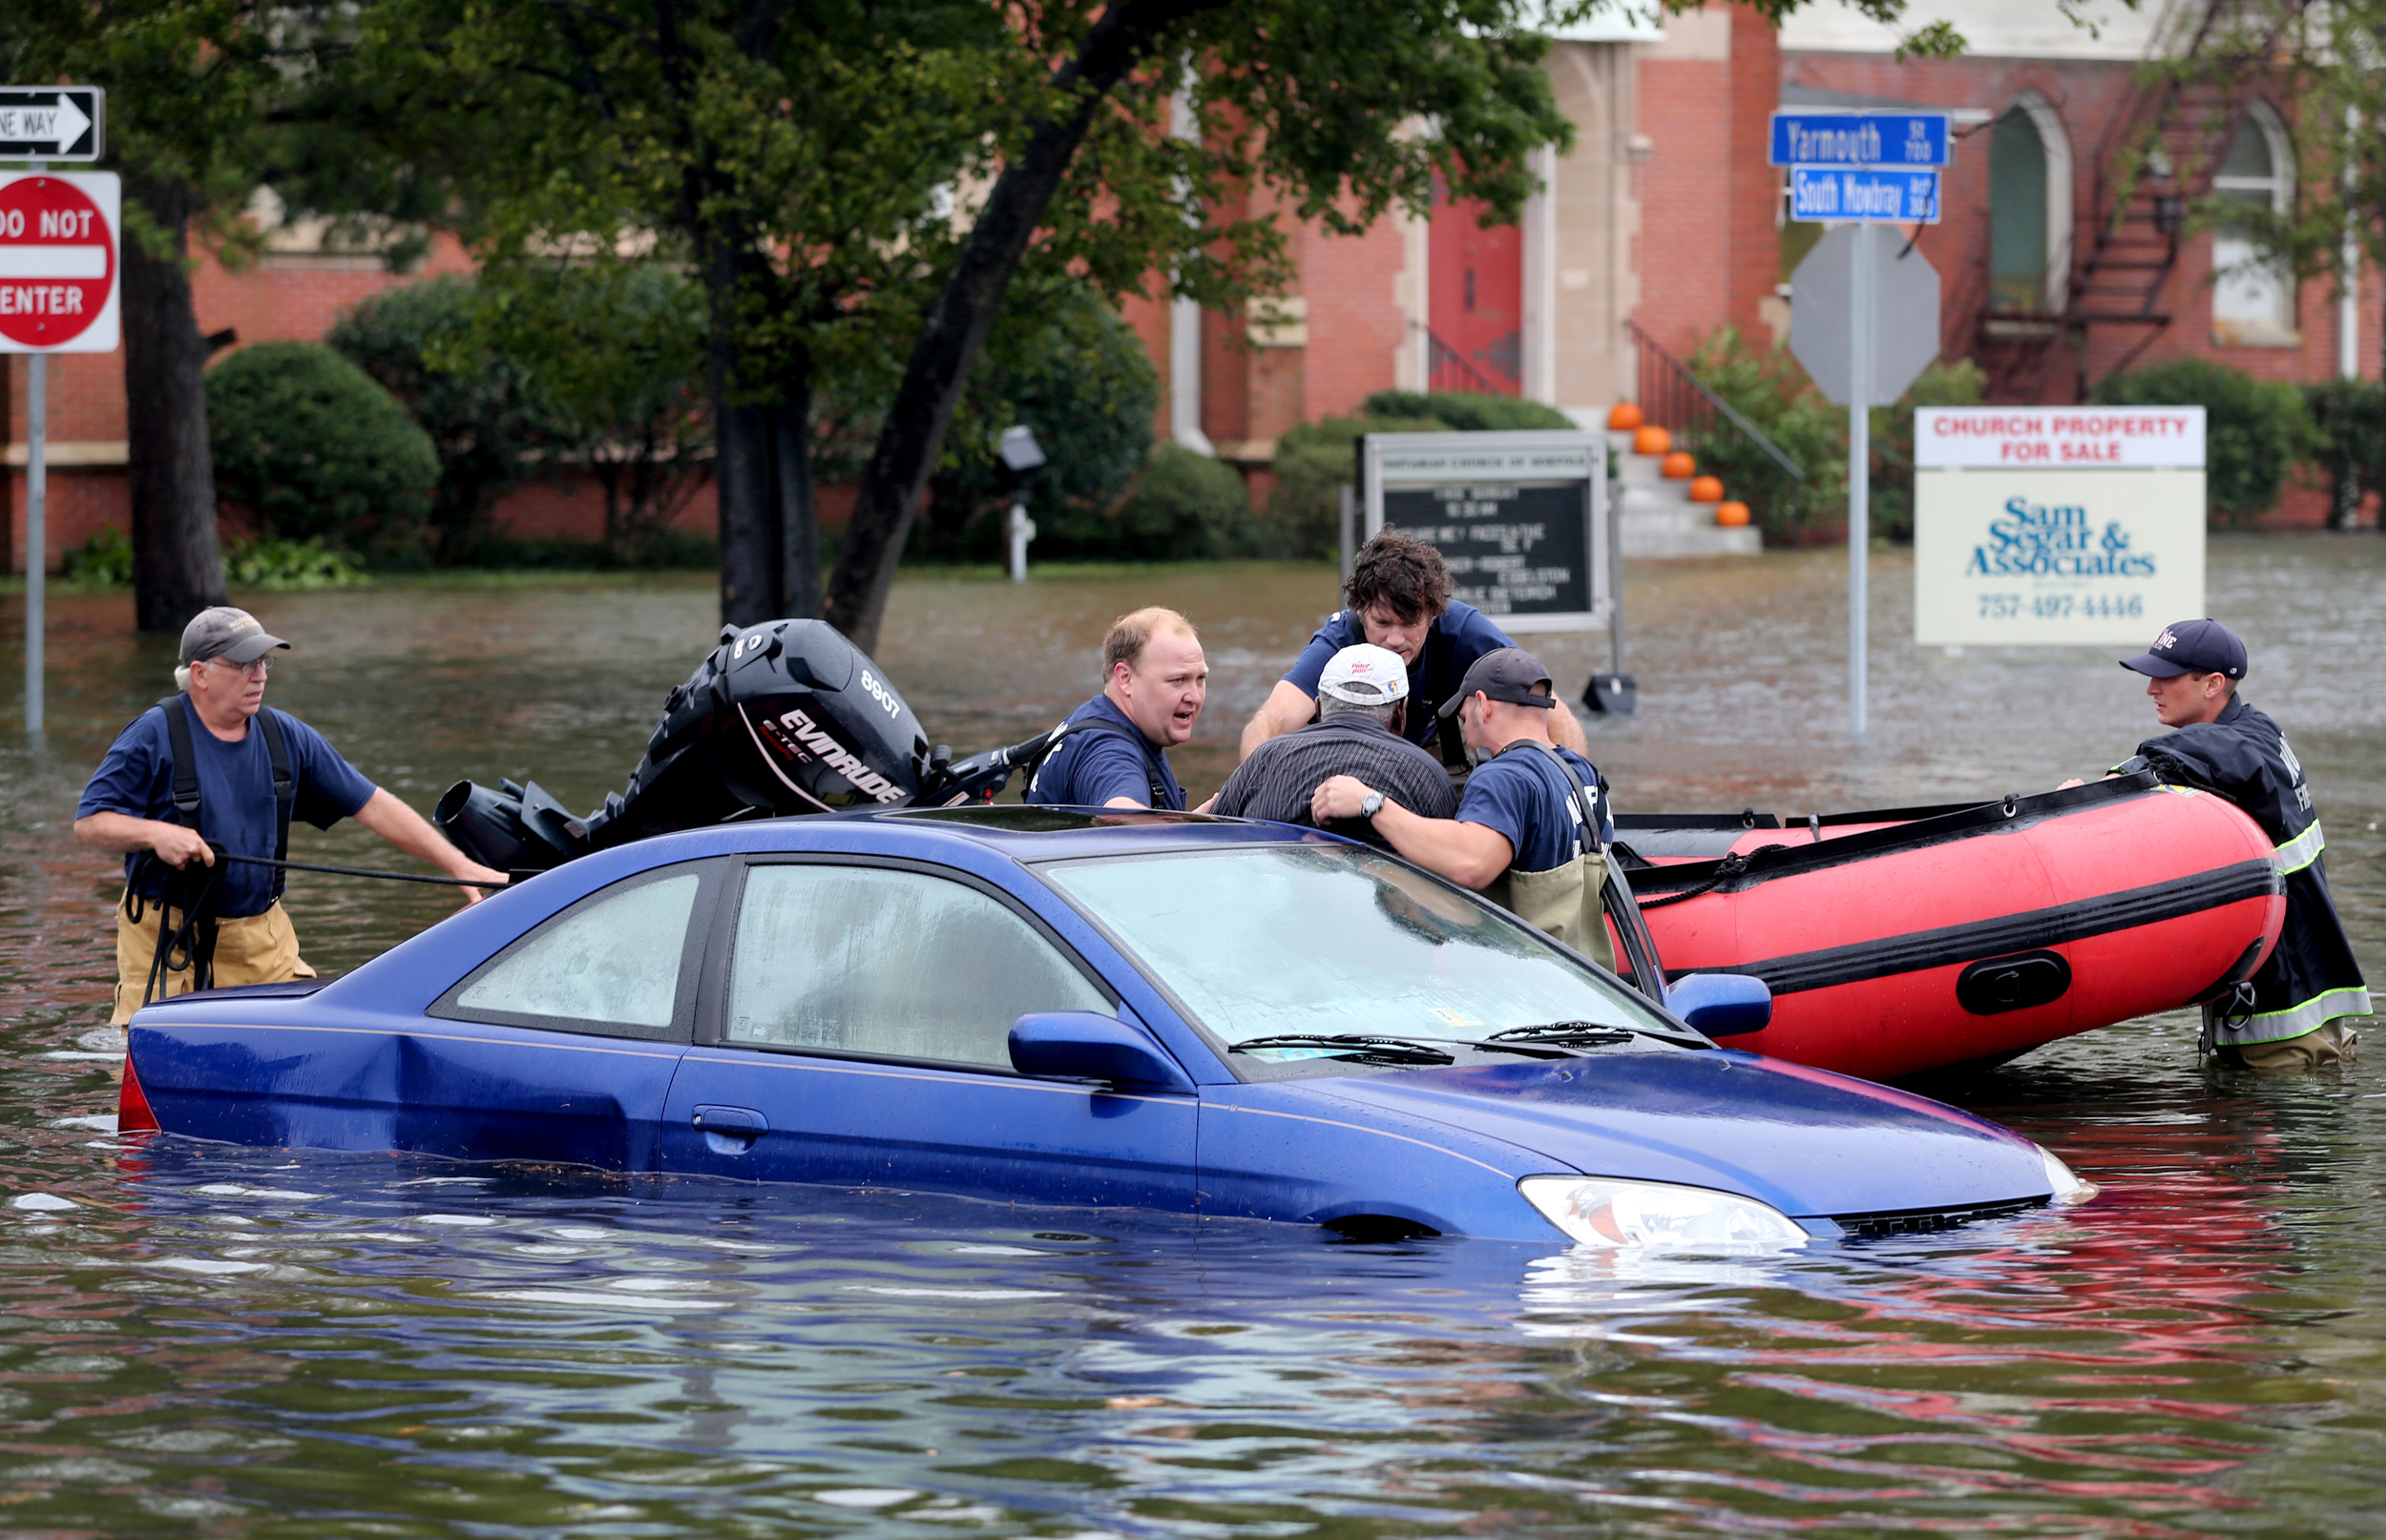 Members of Norfolk Fire-Rescue pull a man from his car that was stranded due to flooding, Sunday, Oct. 4, 2015 in Norfolk, Va.     (AP Photo/Jason Hirschfeld)